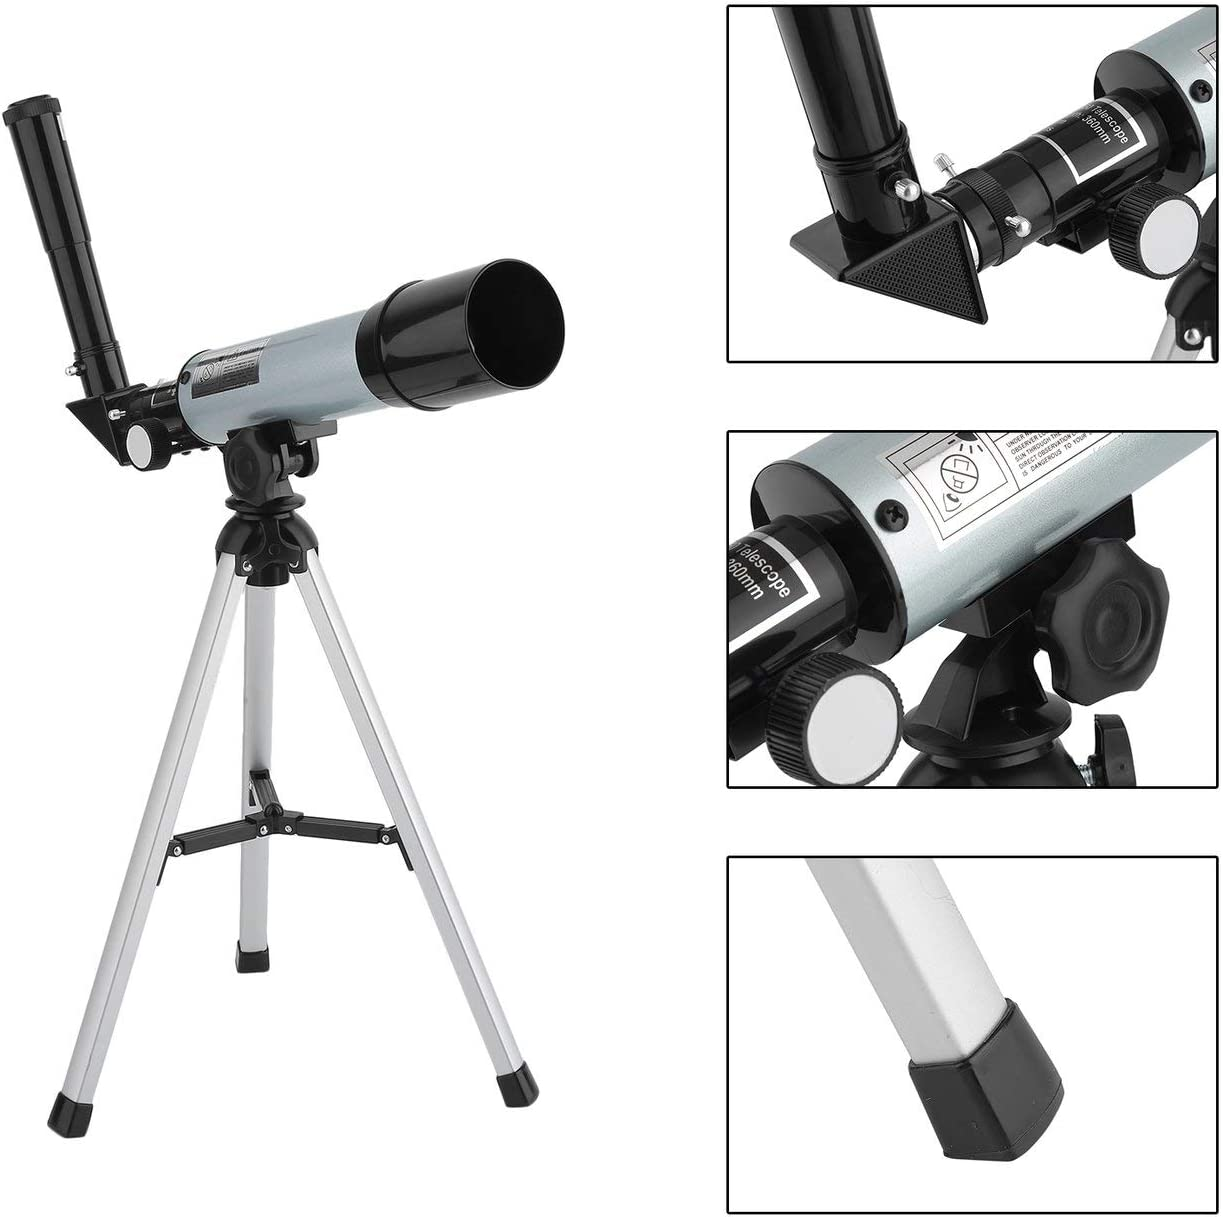 Elviray Outdoor Portable Adjustable Refractor Spotting Scope Astronomical Telescope Monocular With Tripod For Beginners